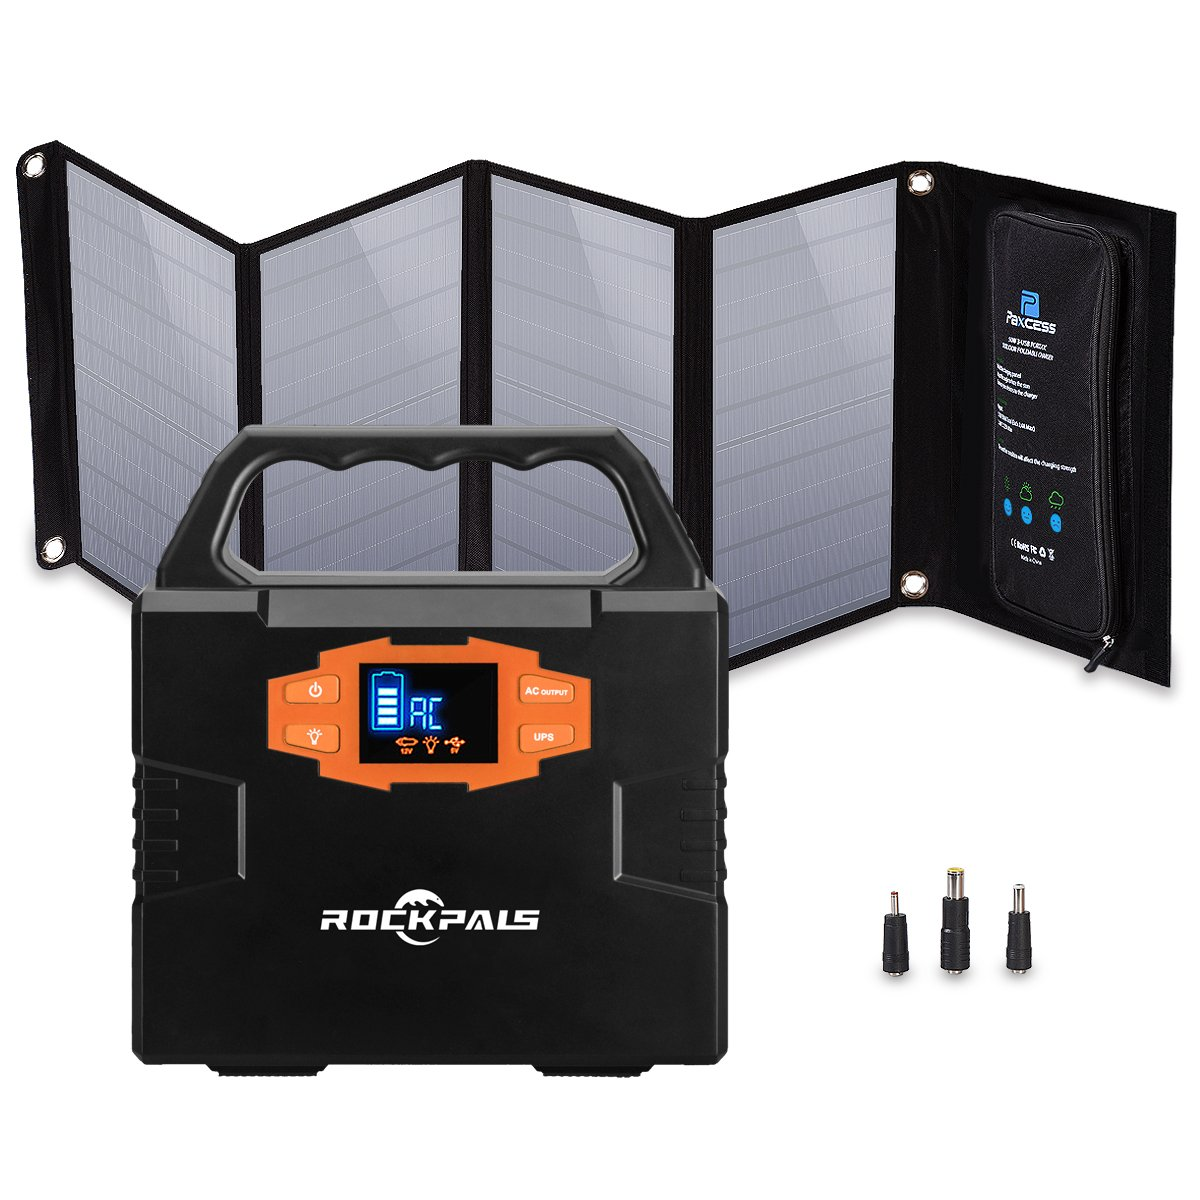 Rockpals 100W Solar Generator Kit with 50W Solar Panel, Portable Solar Power Inverter System, CPAP Battery Pack For Home Camping Emergency Backup Power Supply with 110V AC Outlet/12V by Rockpals